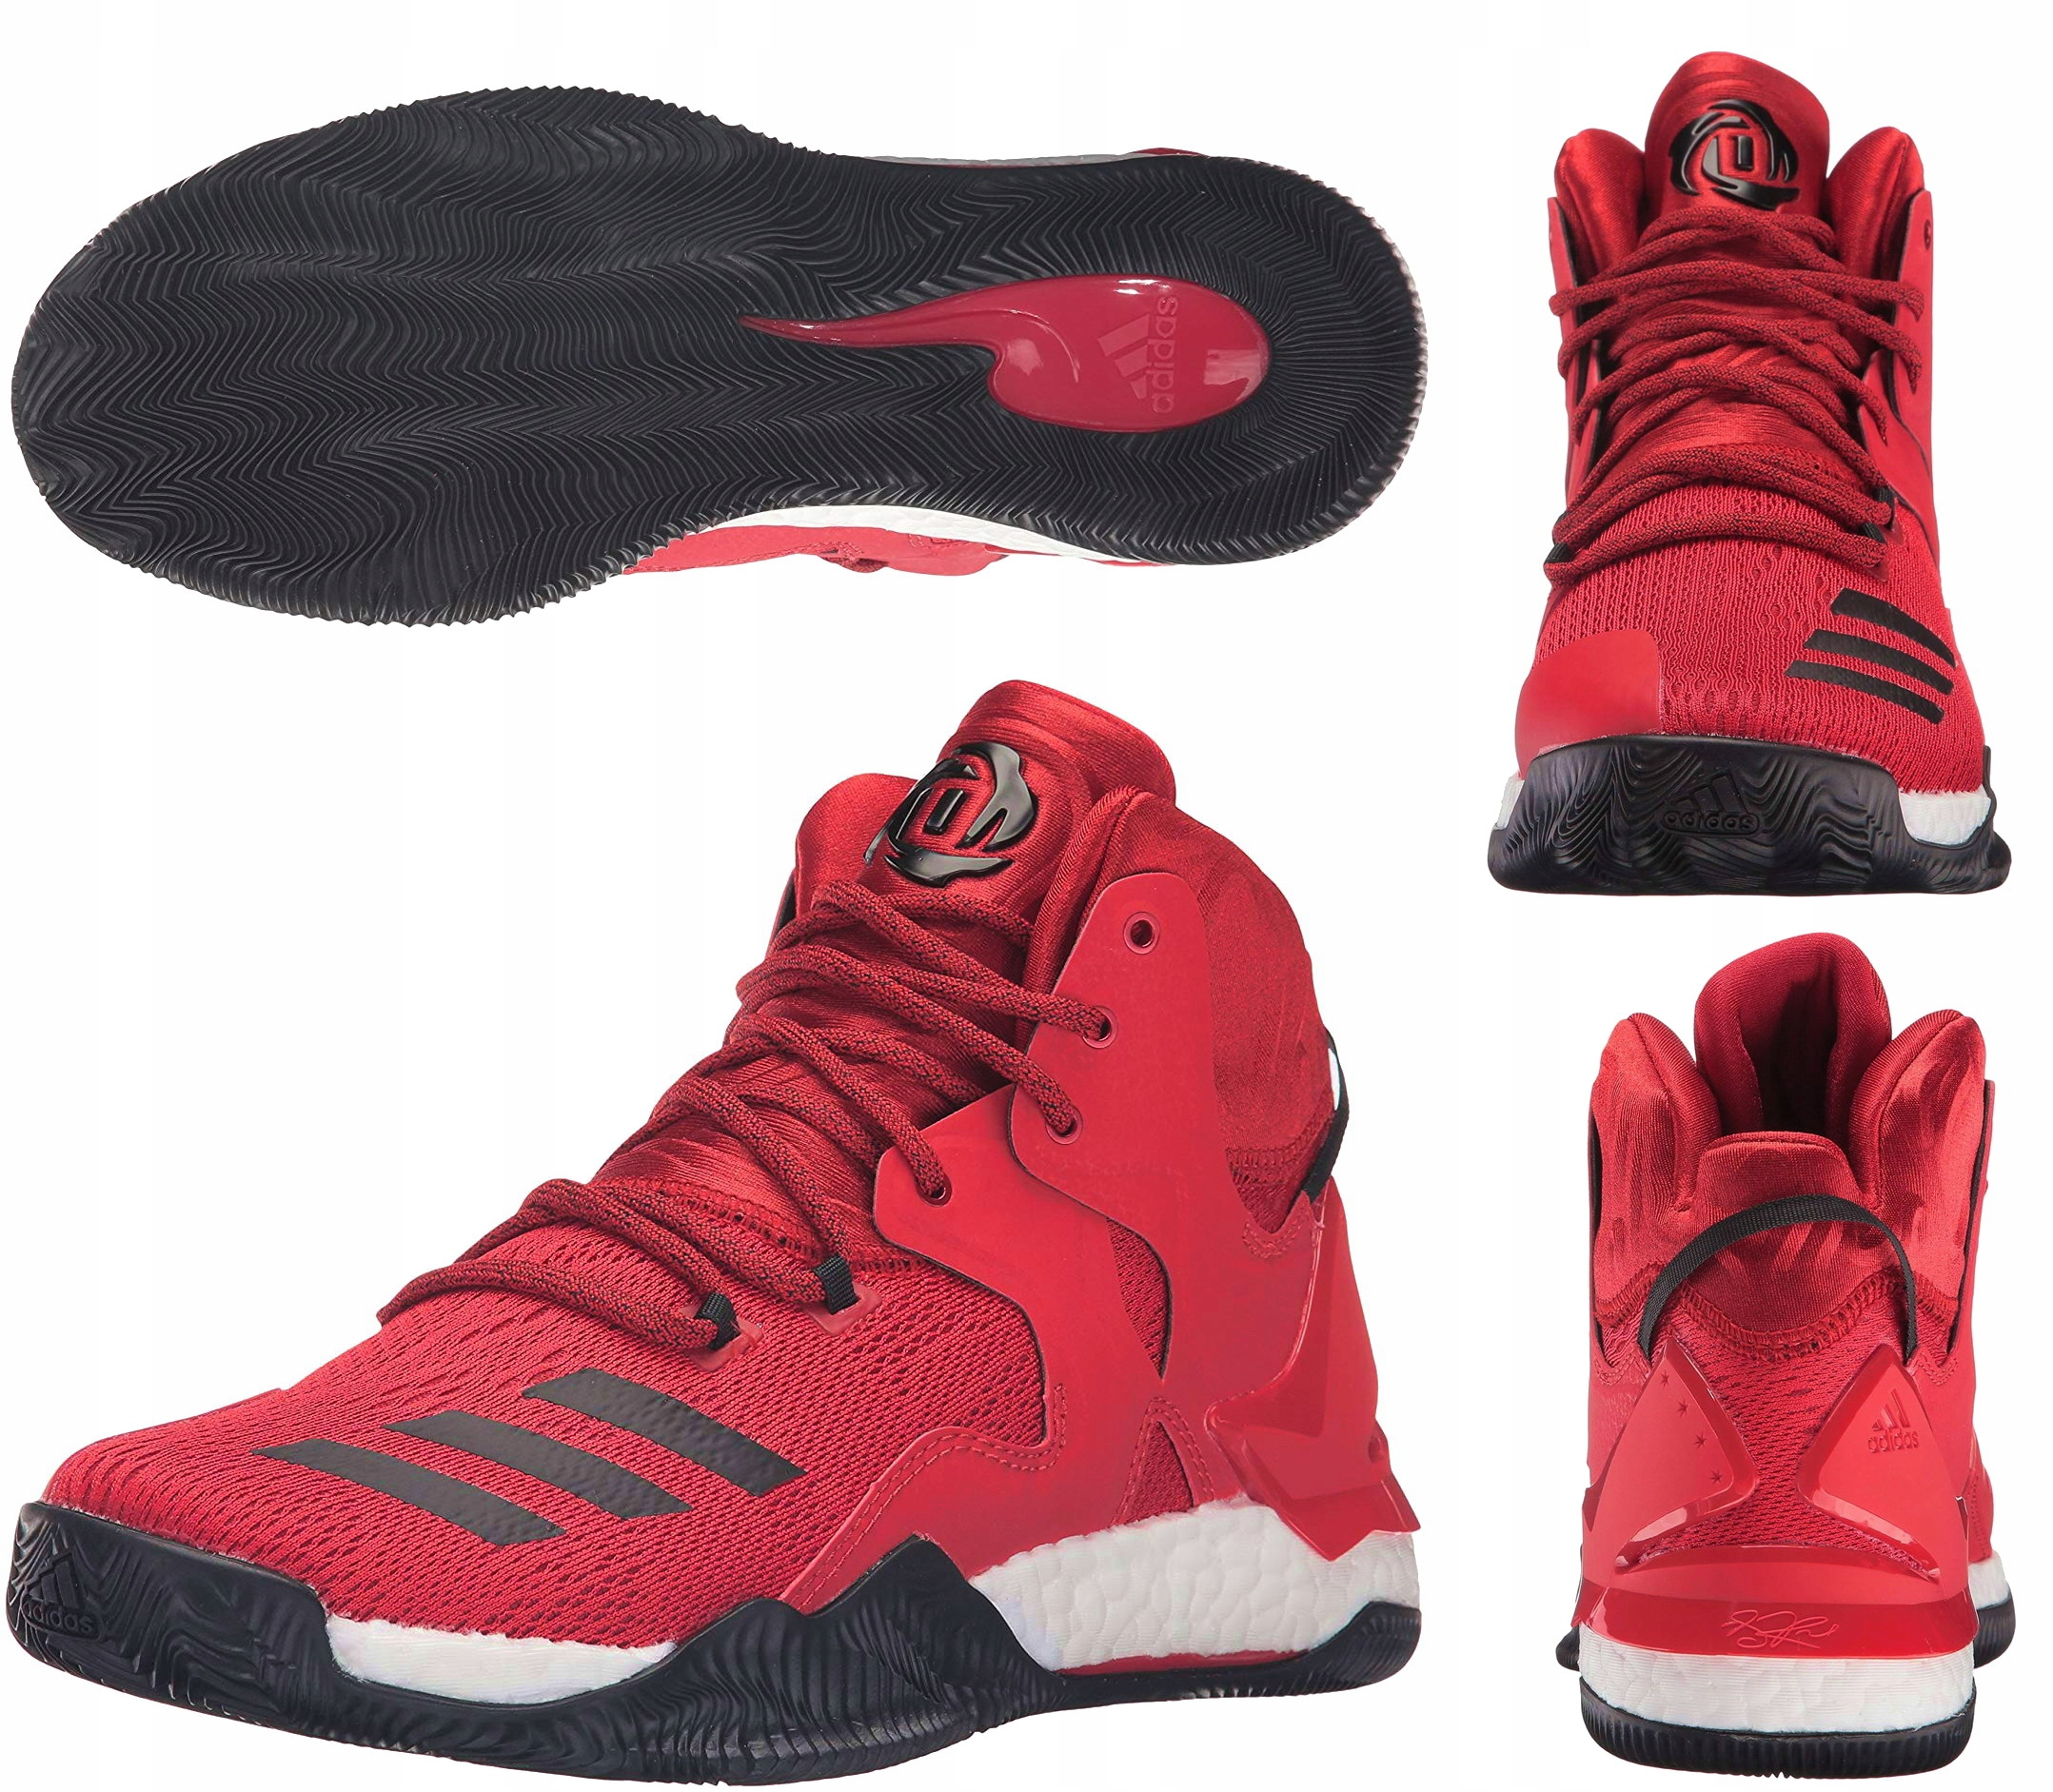 new product 5d87c 401ca Adidas D Rose 7 Boost buty koszykarskie - 48